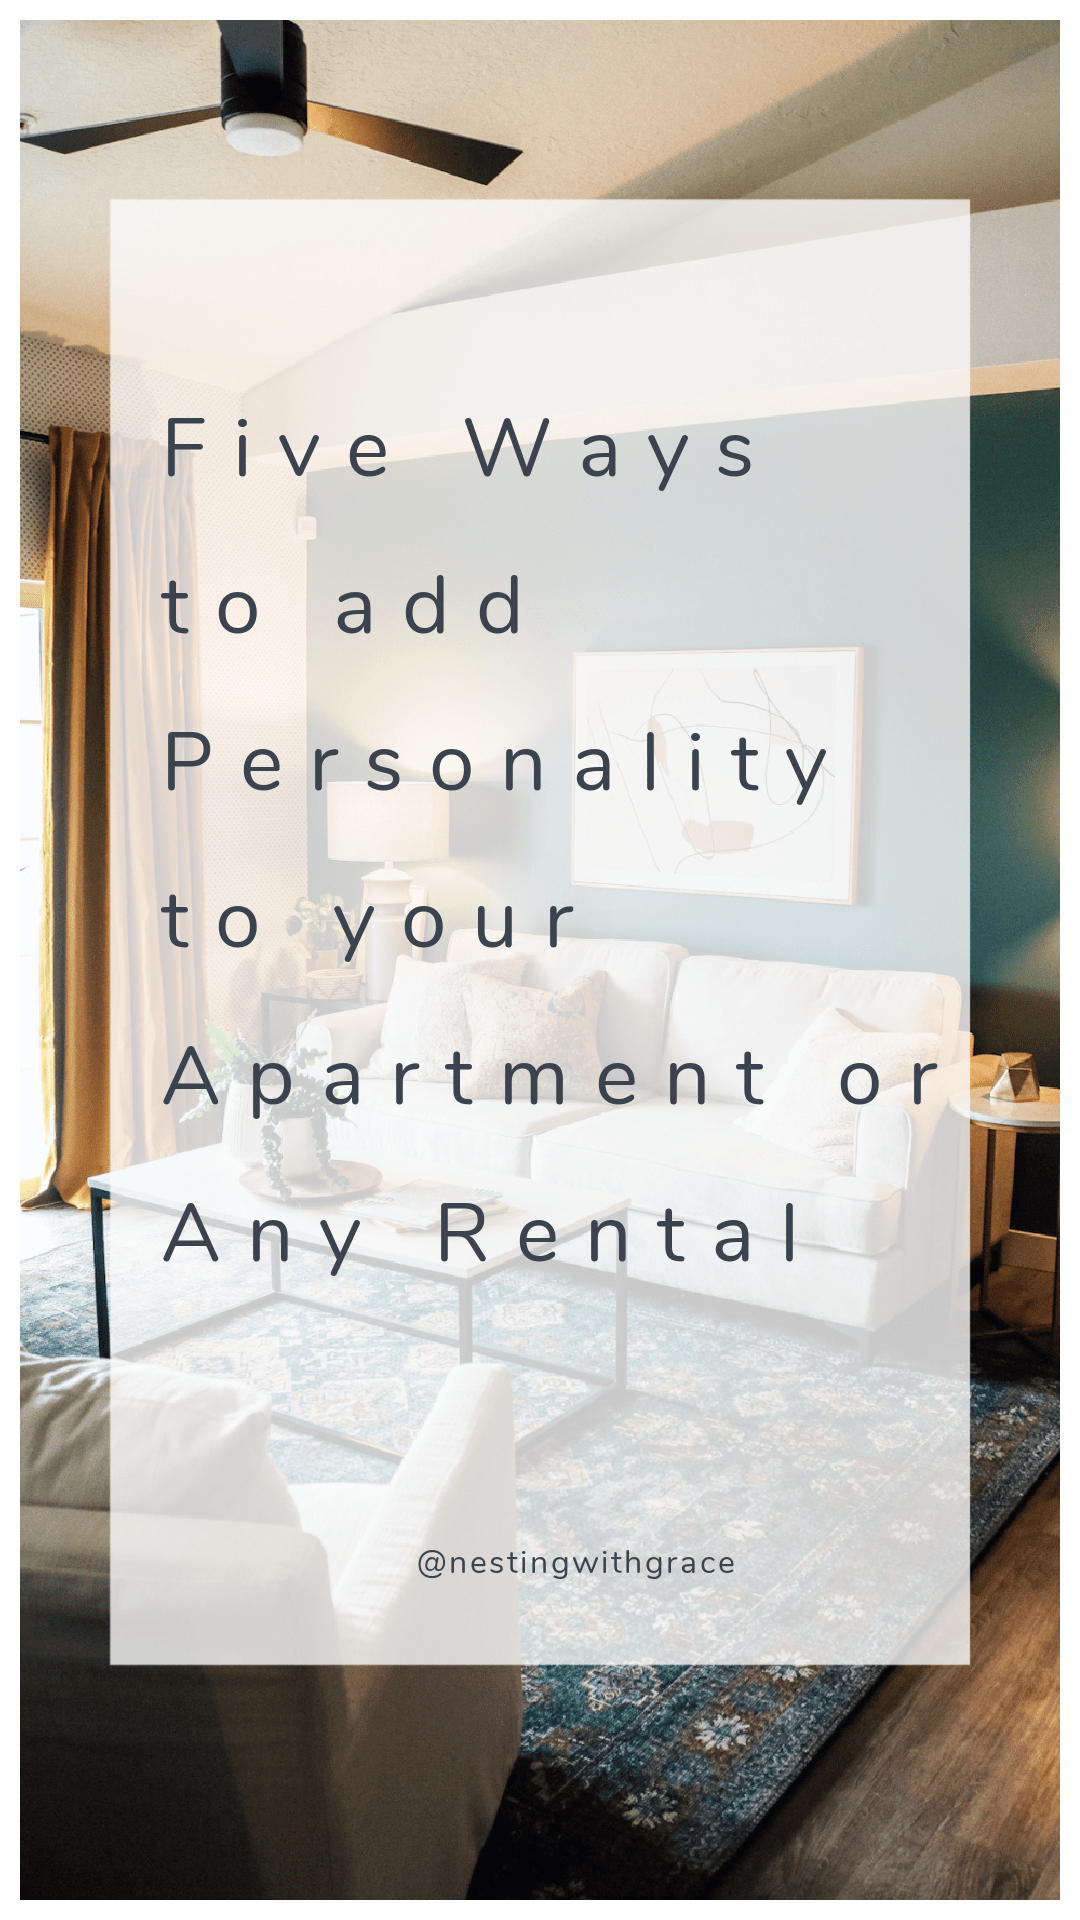 Five Ways to add Personality to your Apartment or Any Rental Peel and Stick Wallpaper Accent Wall Plant Tips